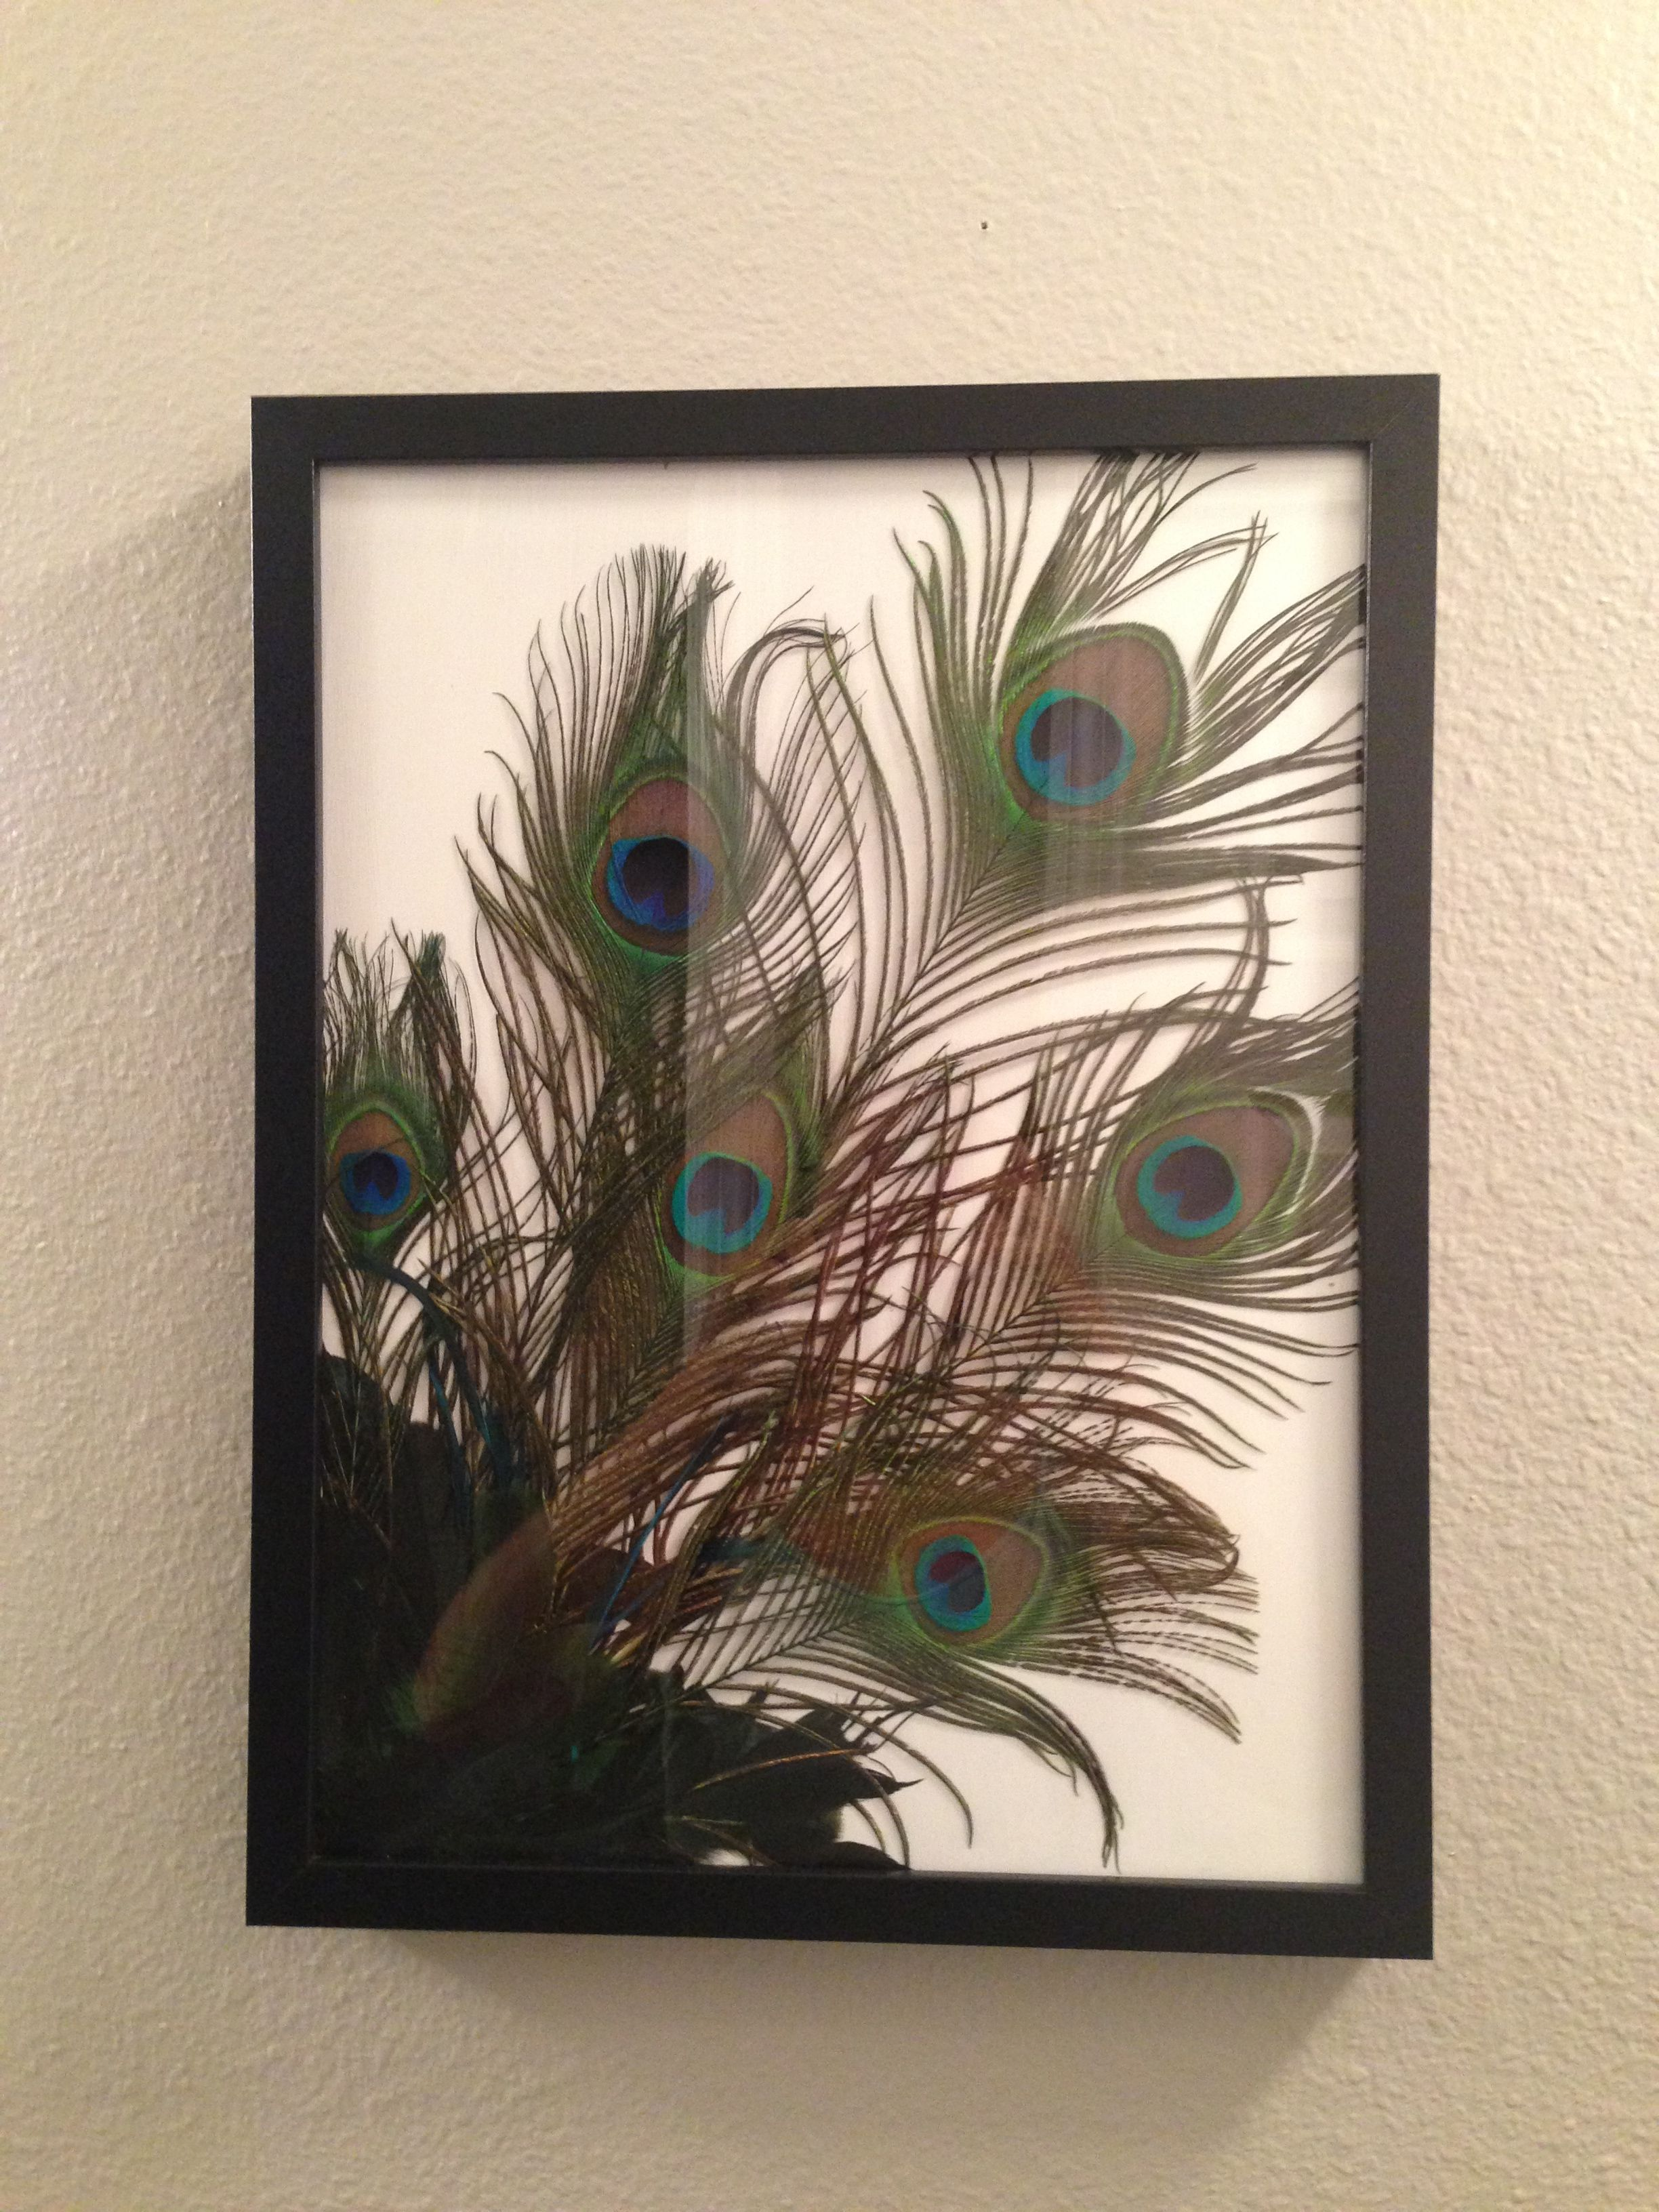 Can I keep peacock feathers at home